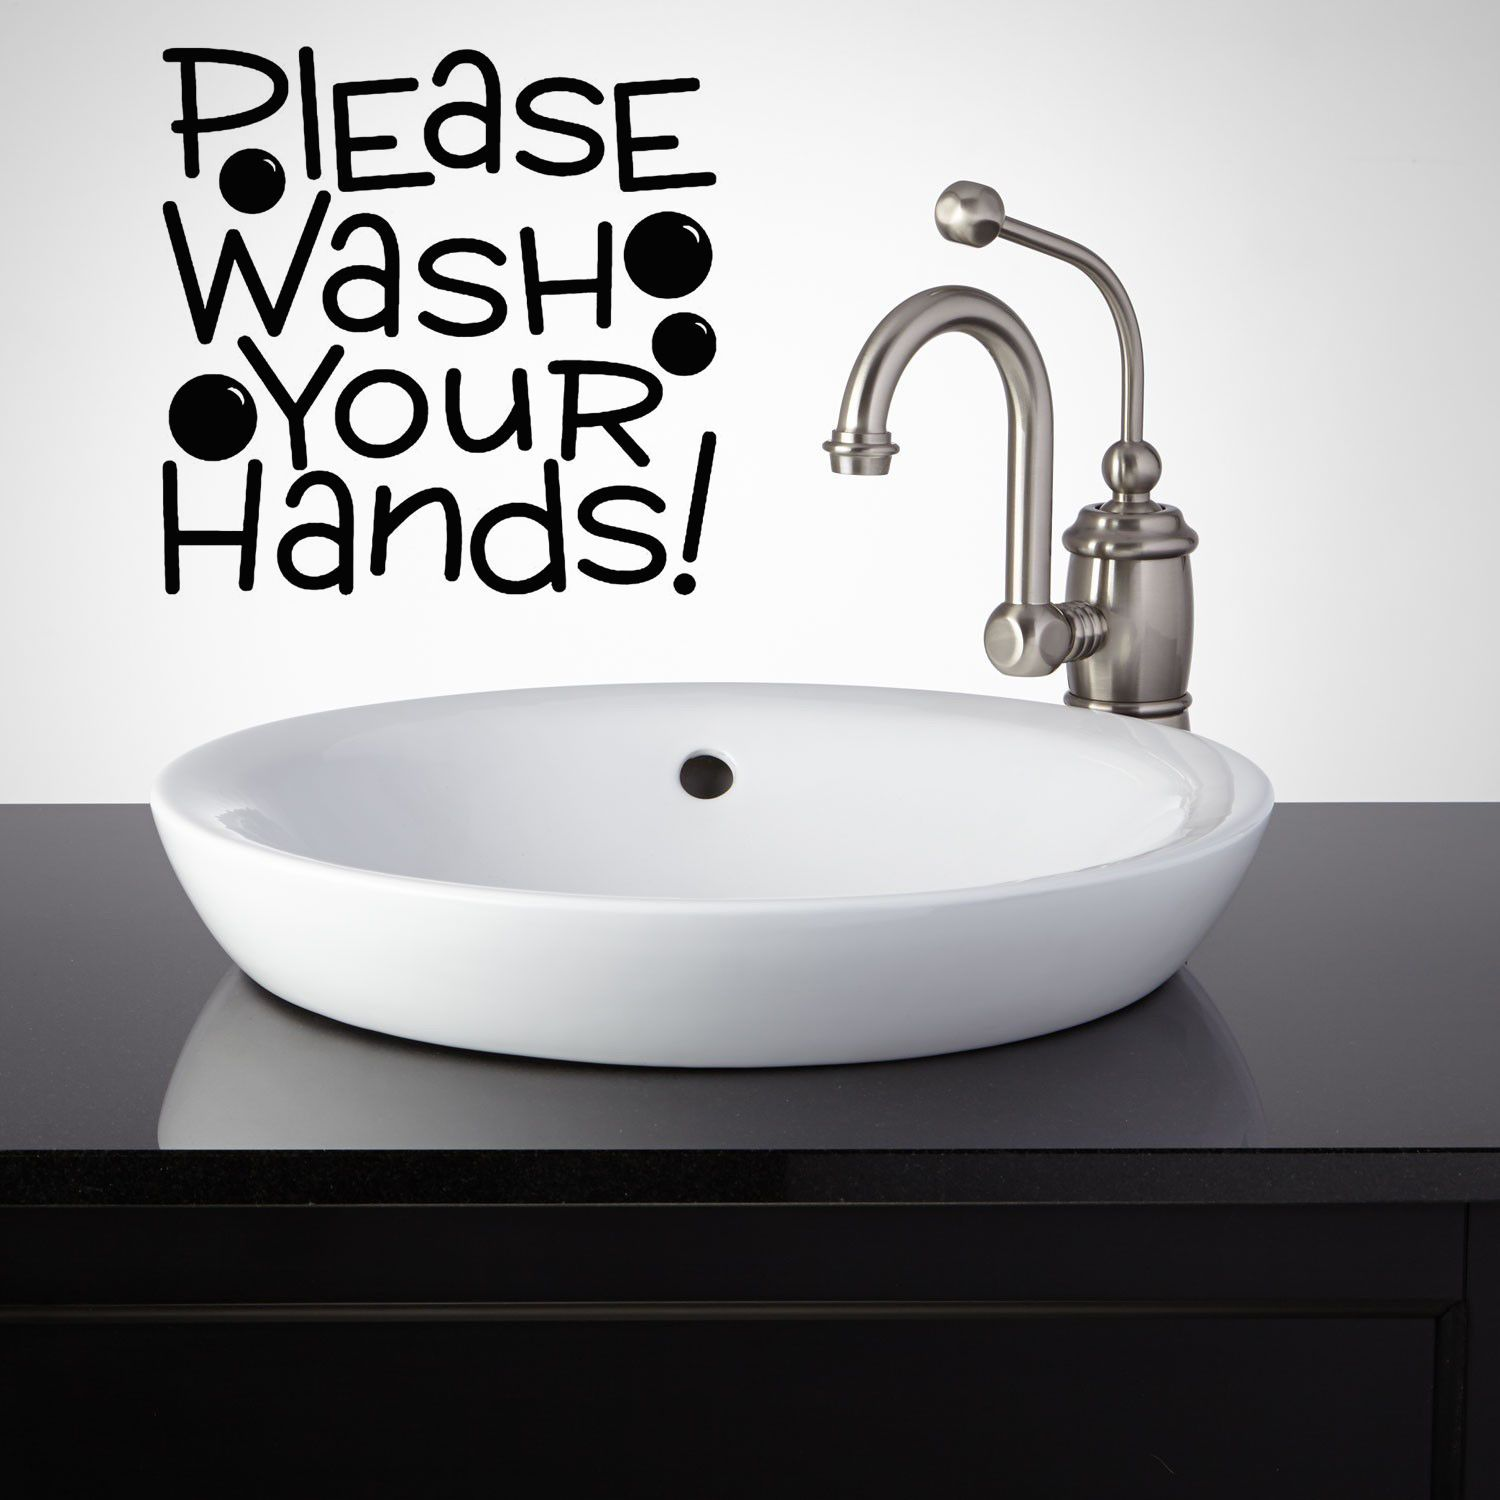 Please Wash Your Hands Bathroom Lettering Wall Decal Quote Bath